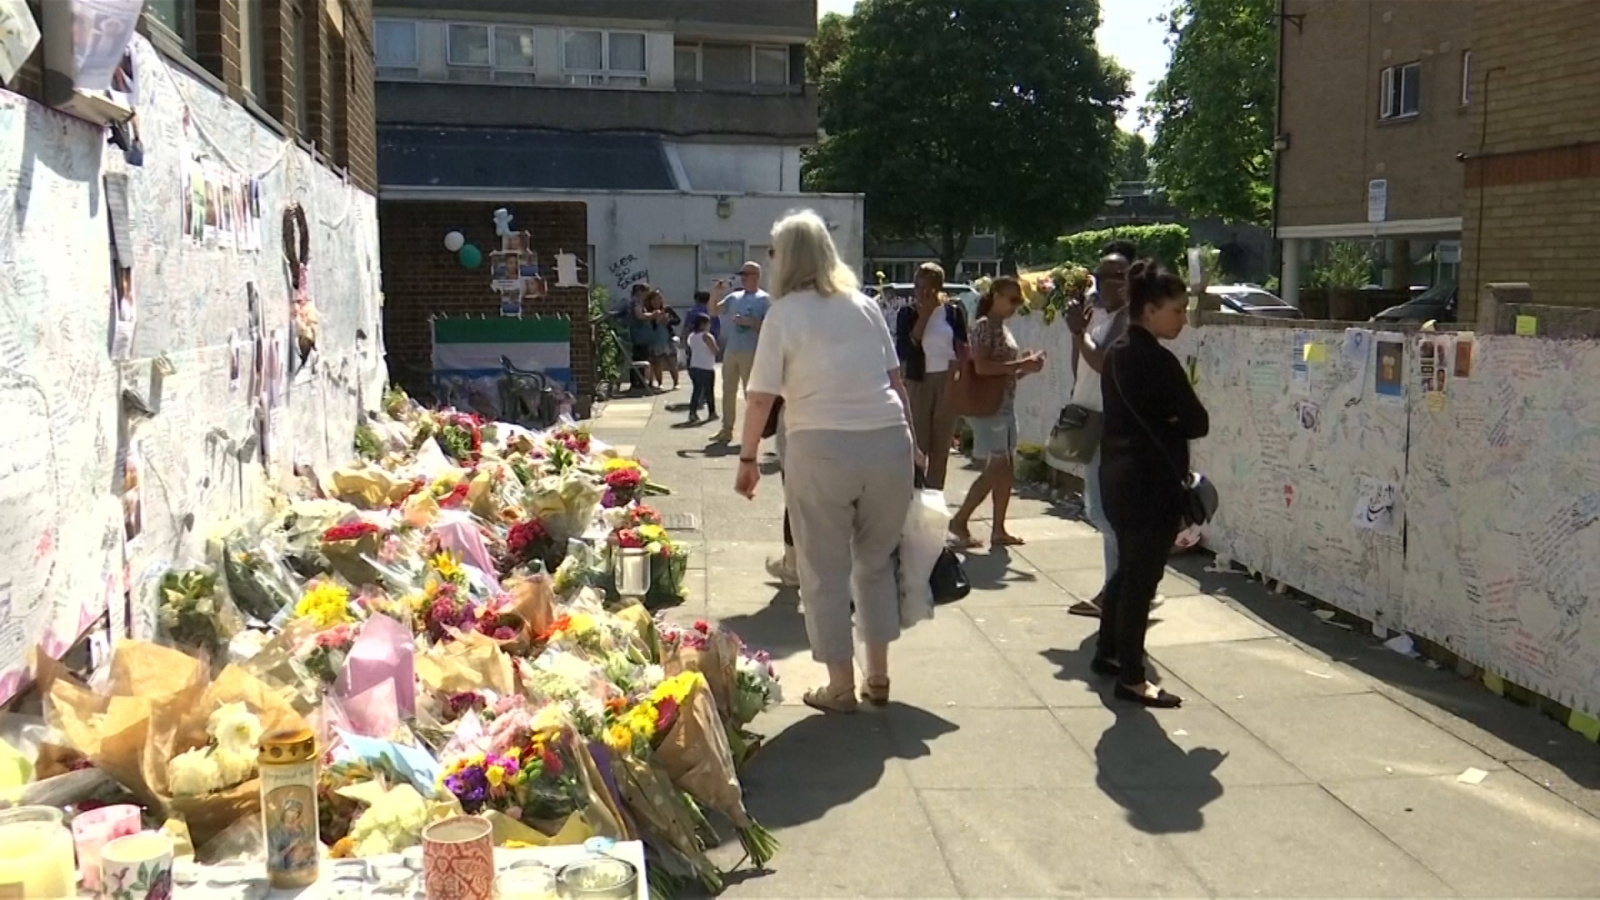 community-gathers-for-tribute-to-grenfell-tower-victims